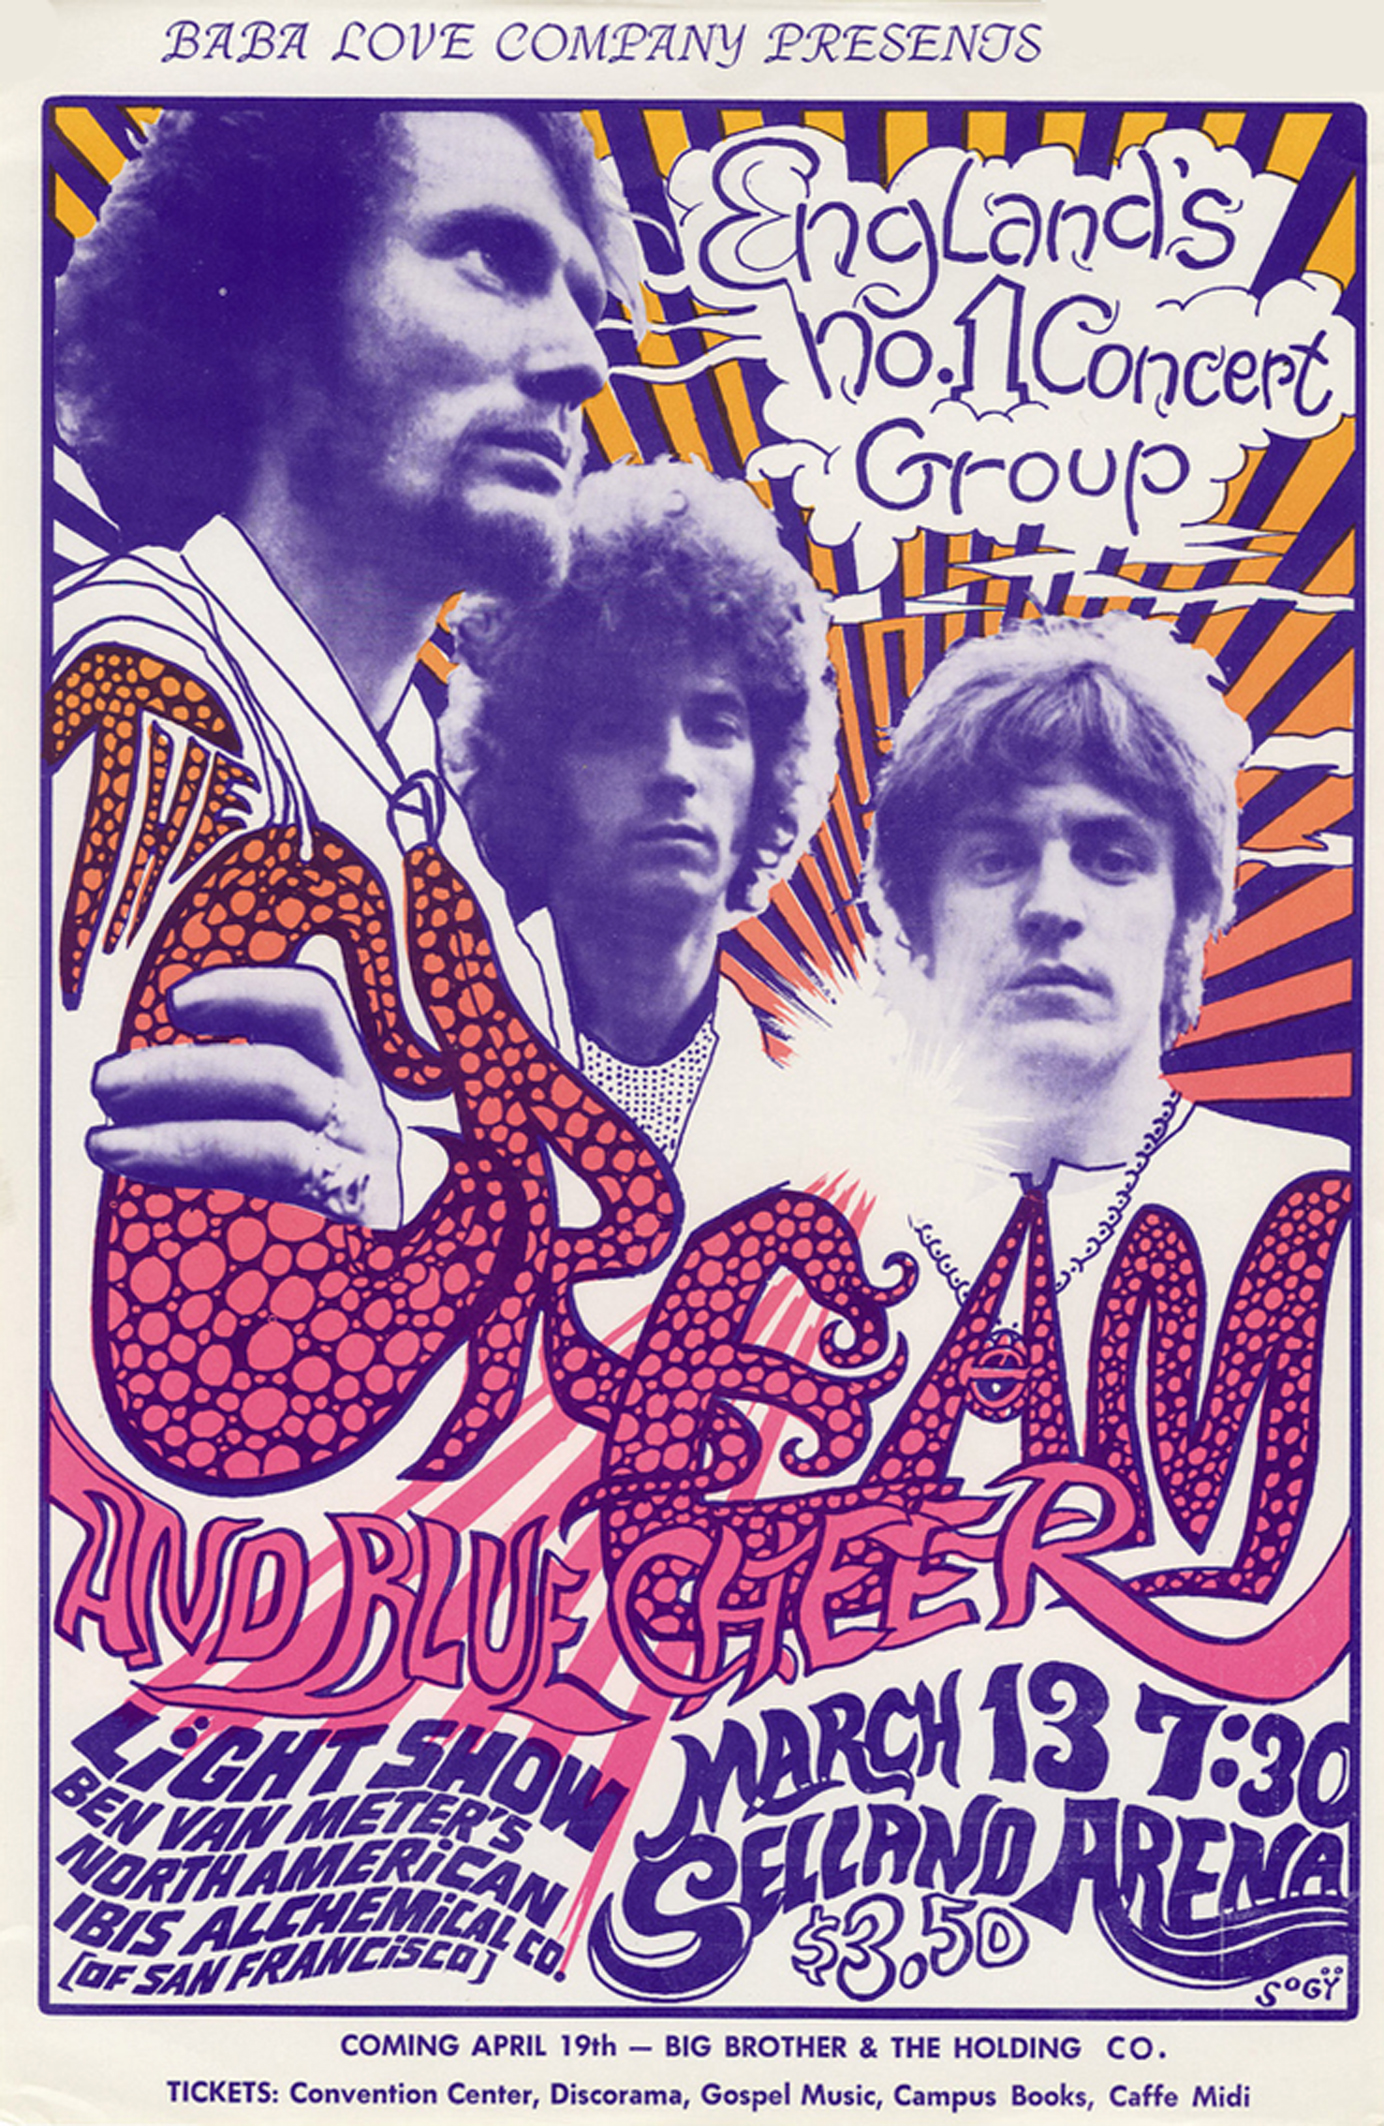 Cream - Blue Cheer Selland Arena 1968